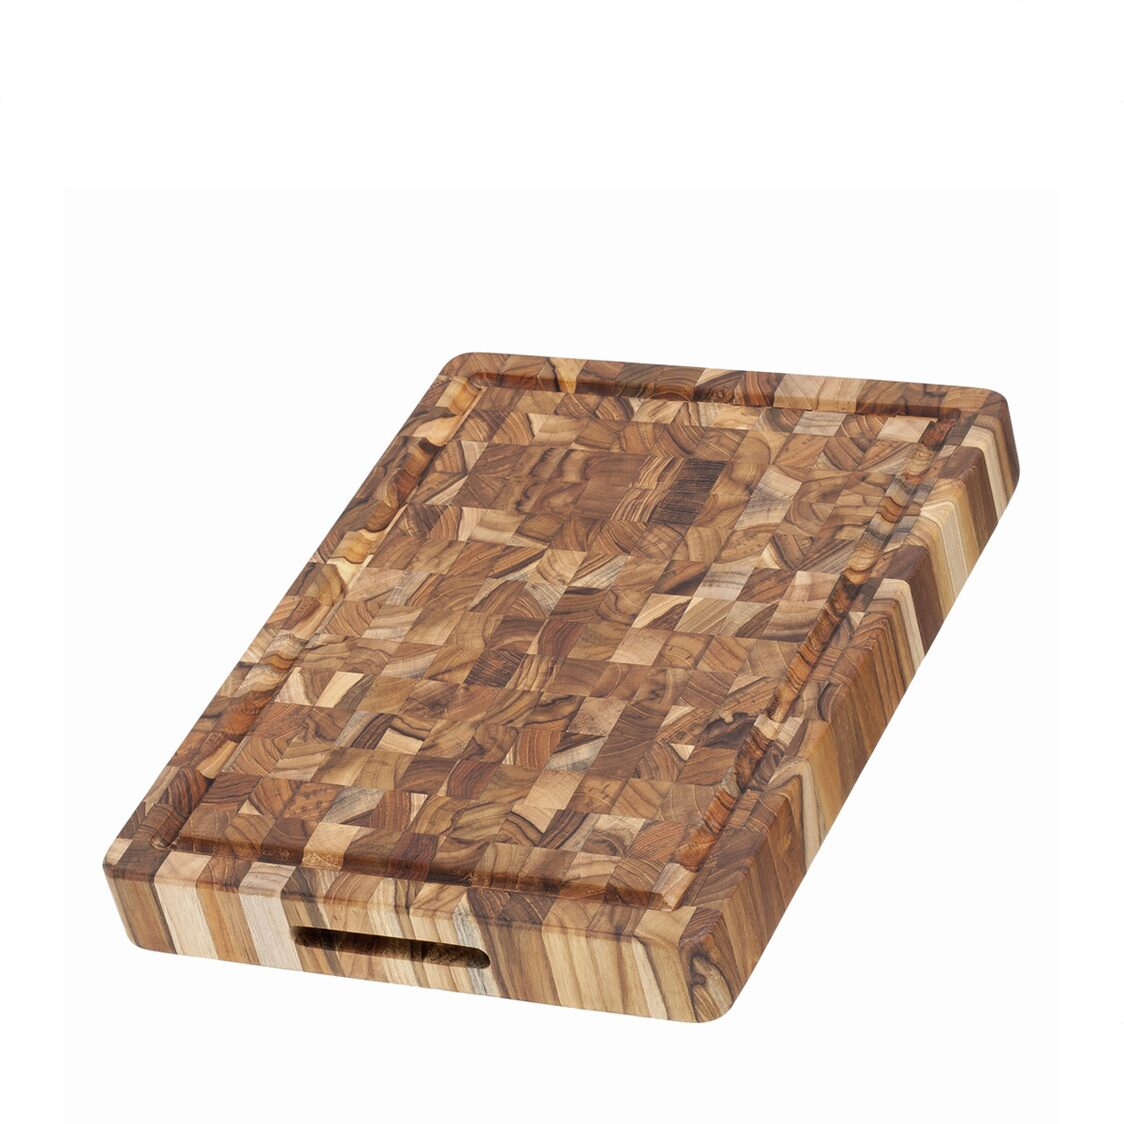 Butcher Block Rectangle With Hand Grip And Juice Canal 309